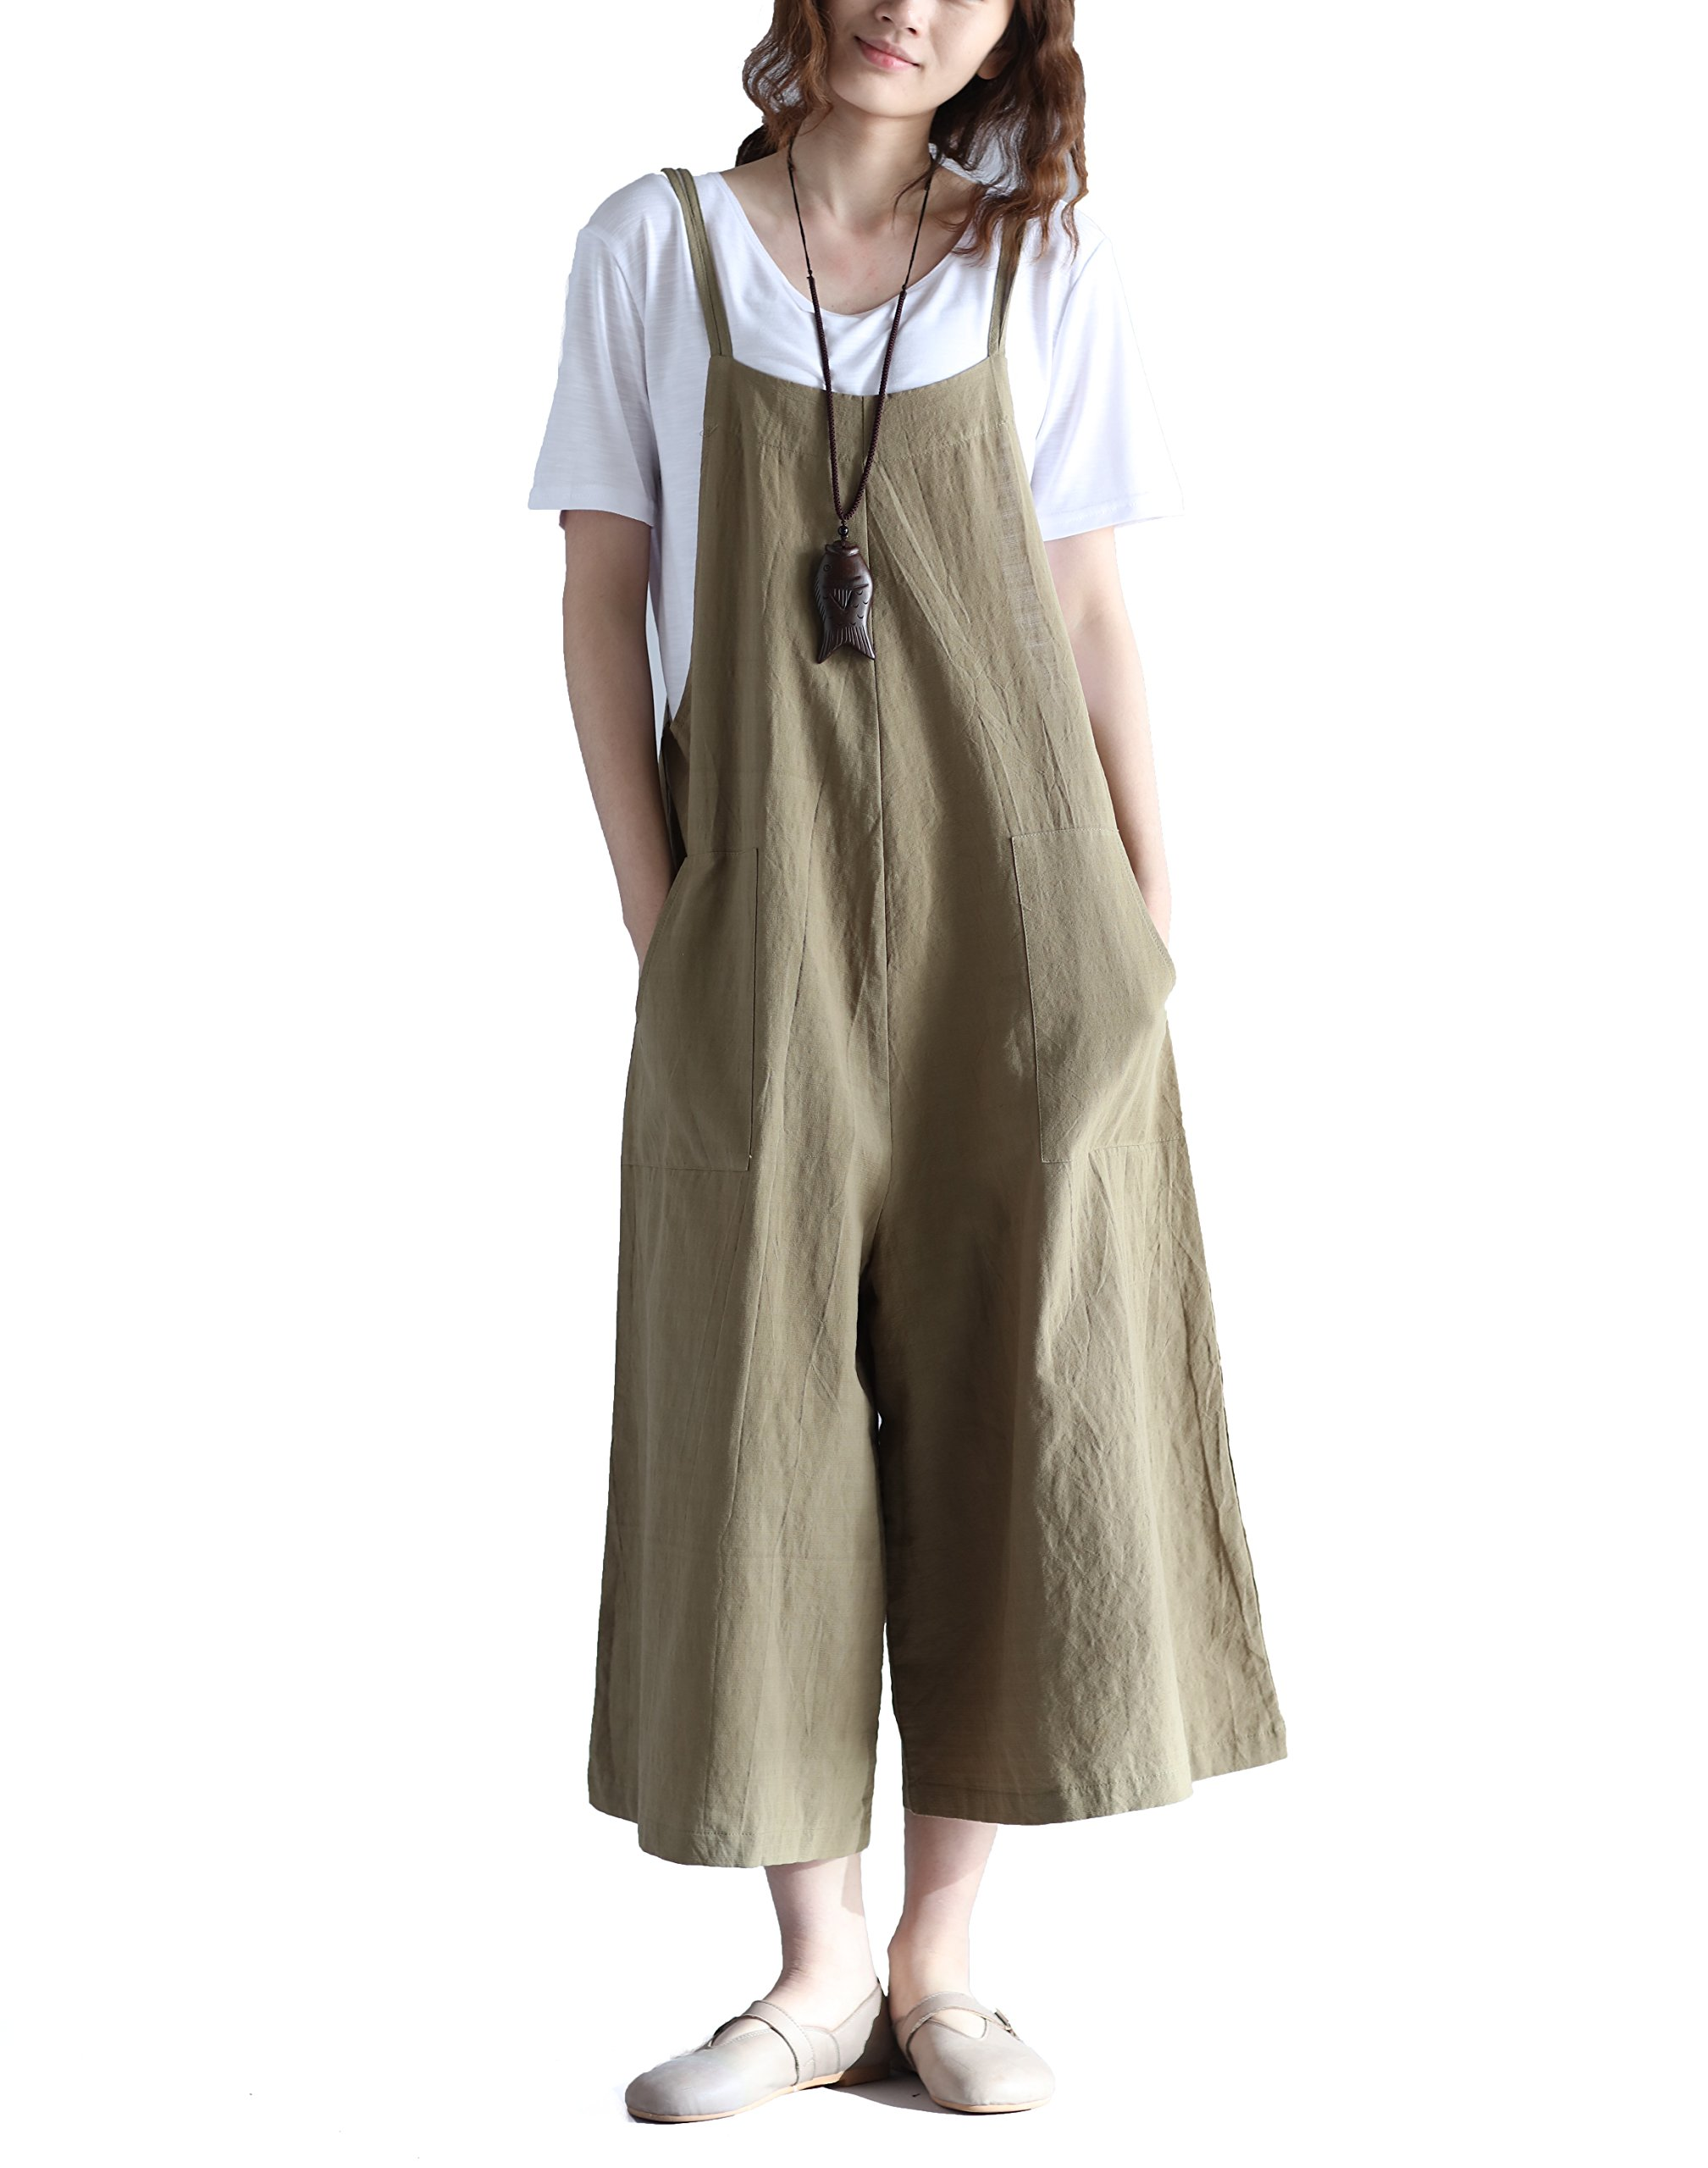 2e29ec19c81 Hulaha Womens Linen Loose Fit Overalls Jumpers product image